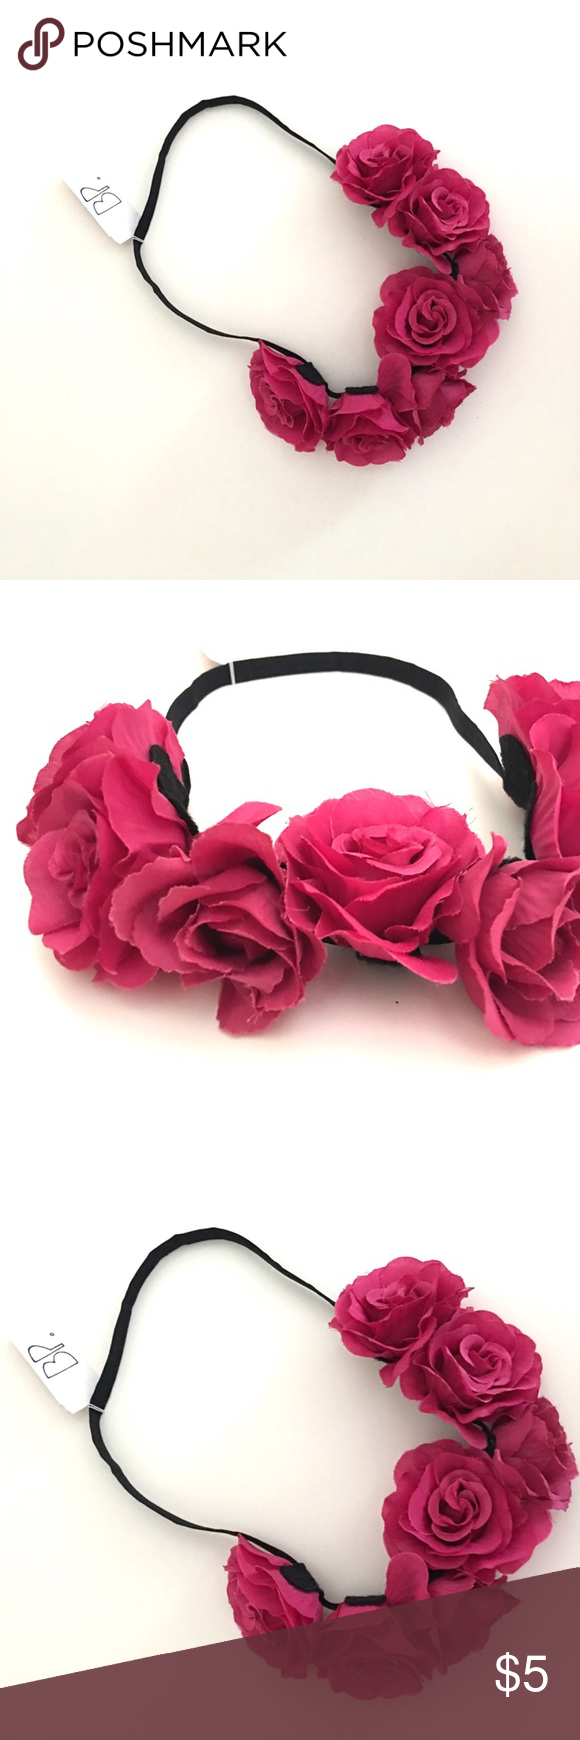 NWT BP Super cute Floral Crown Headband Very cute headband! Great for mommy and baby photo shoots or just be fab bp Accessories Hair Accessories #crownheadband